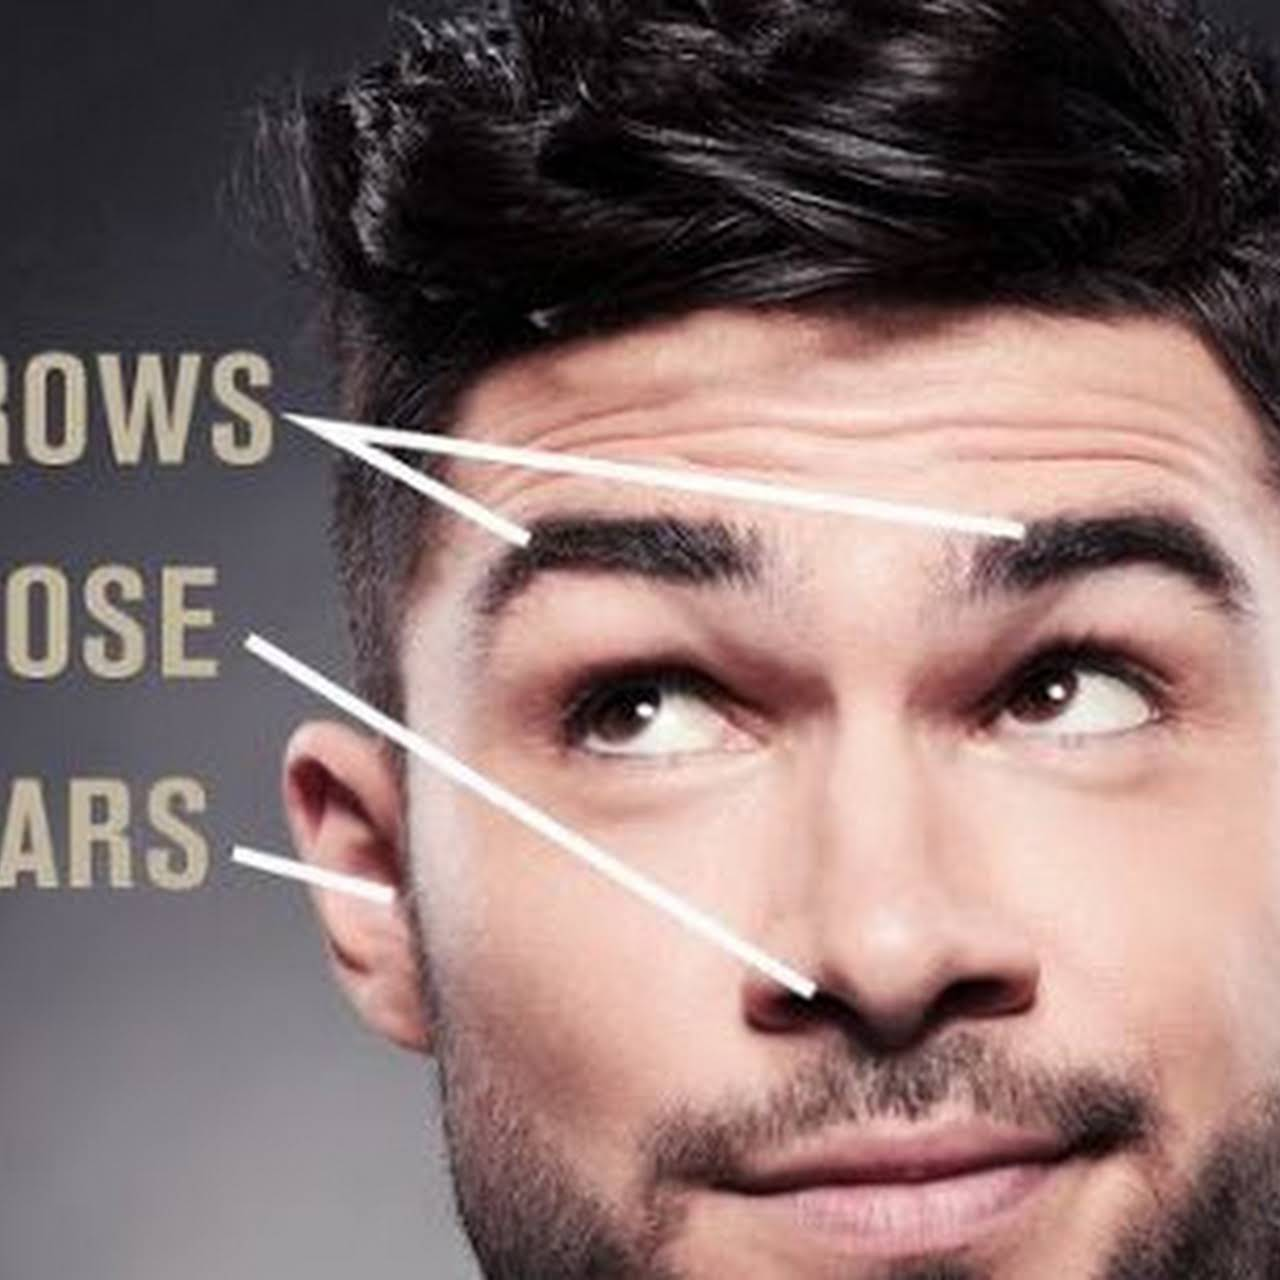 188 Fine Mens Salons The Woodlands Mens Hair Salon And